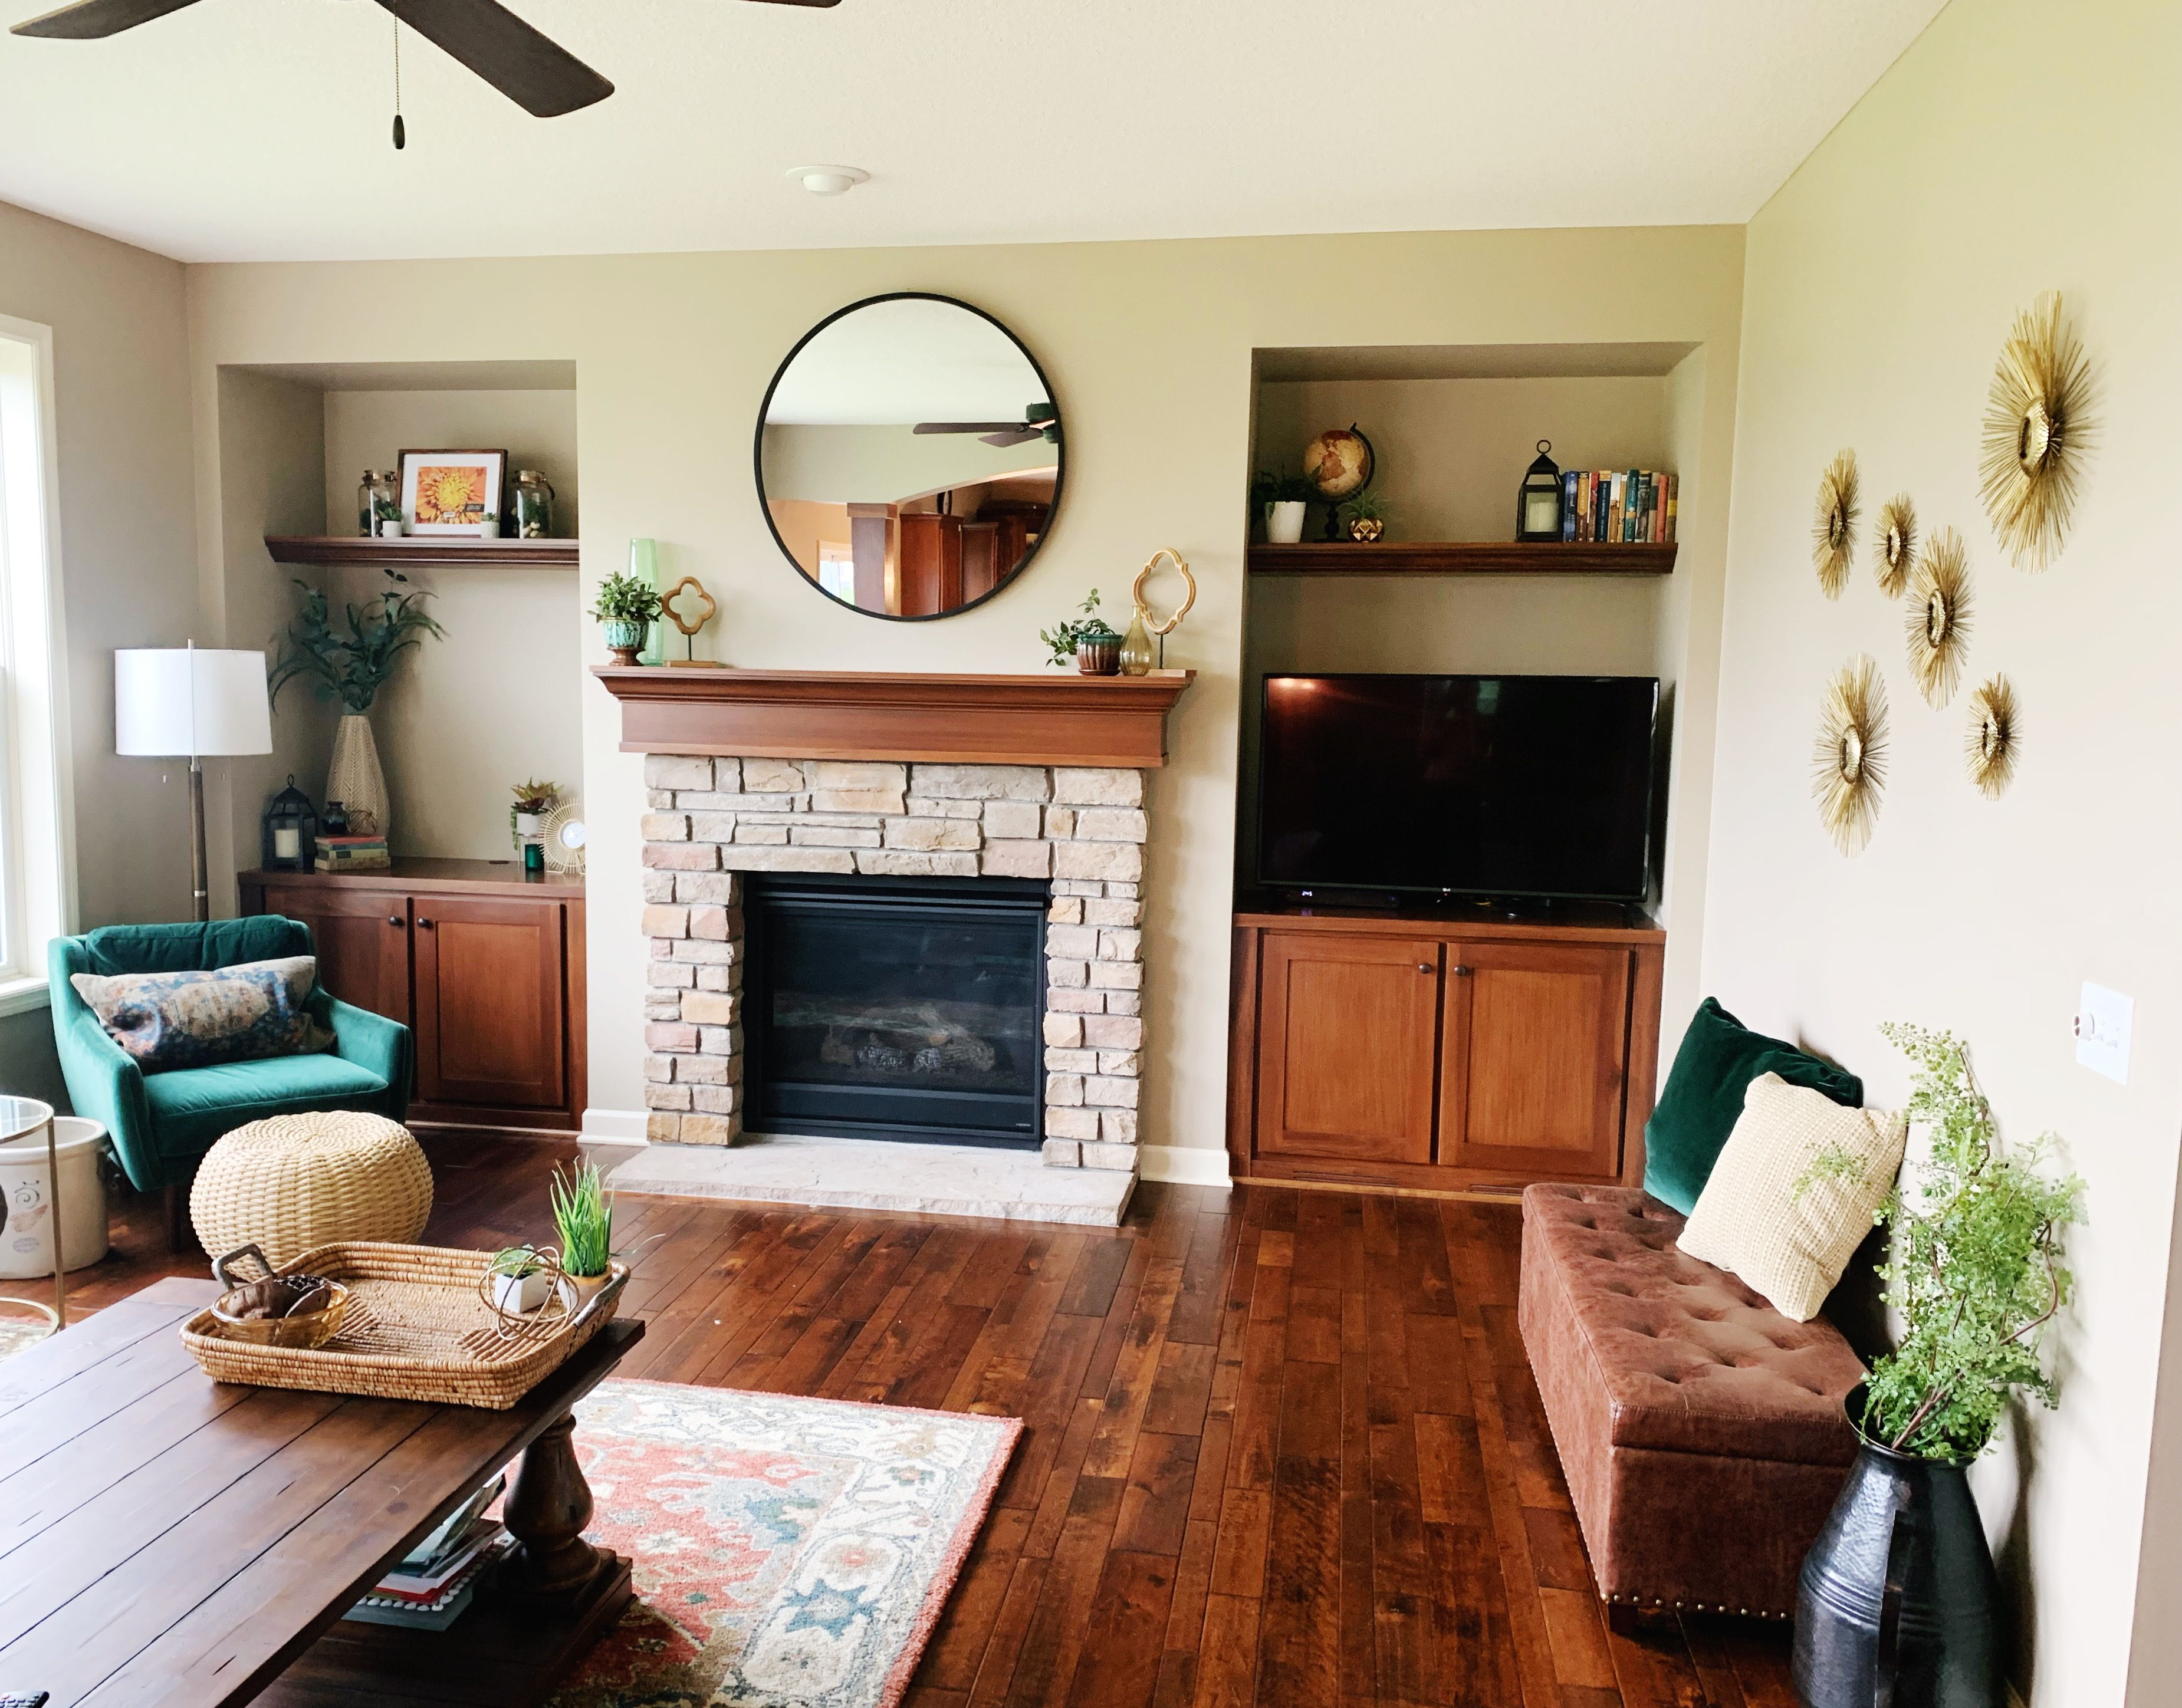 Living Room Built In Staging Living Room Built In Interior Design Upcycled Home Decor